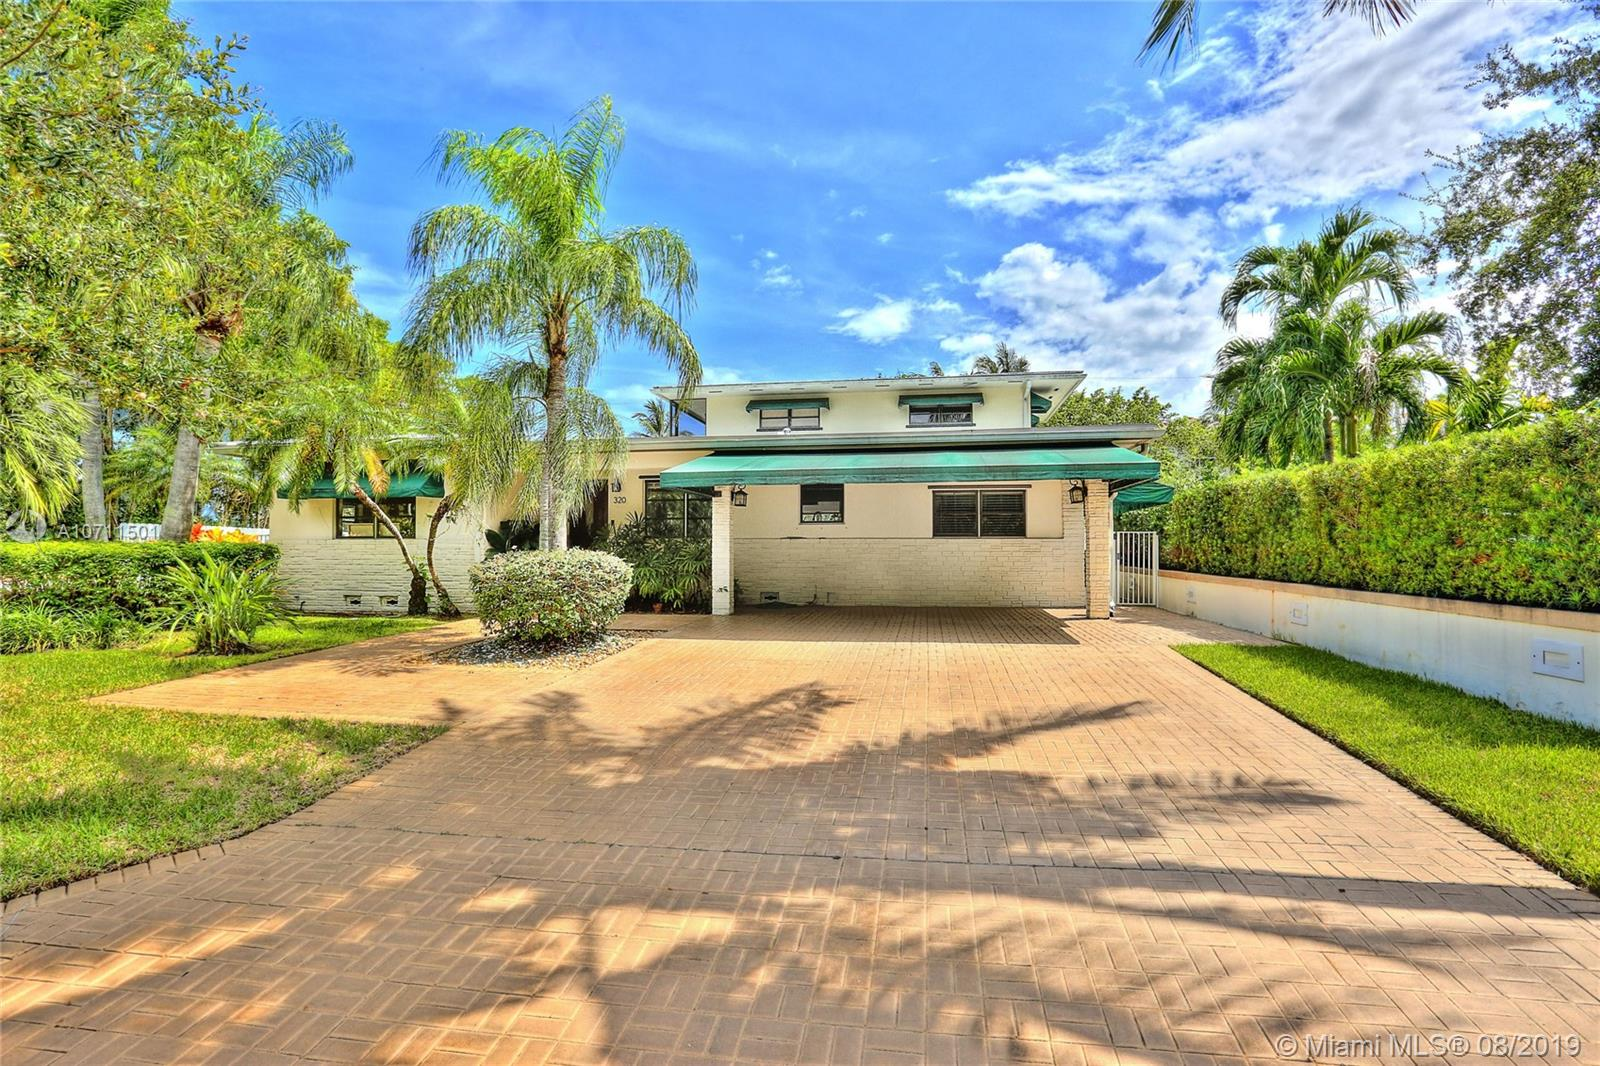 One of Key Biscayne 3 Bedroom Homes for Sale at 320 W Mcintyre St